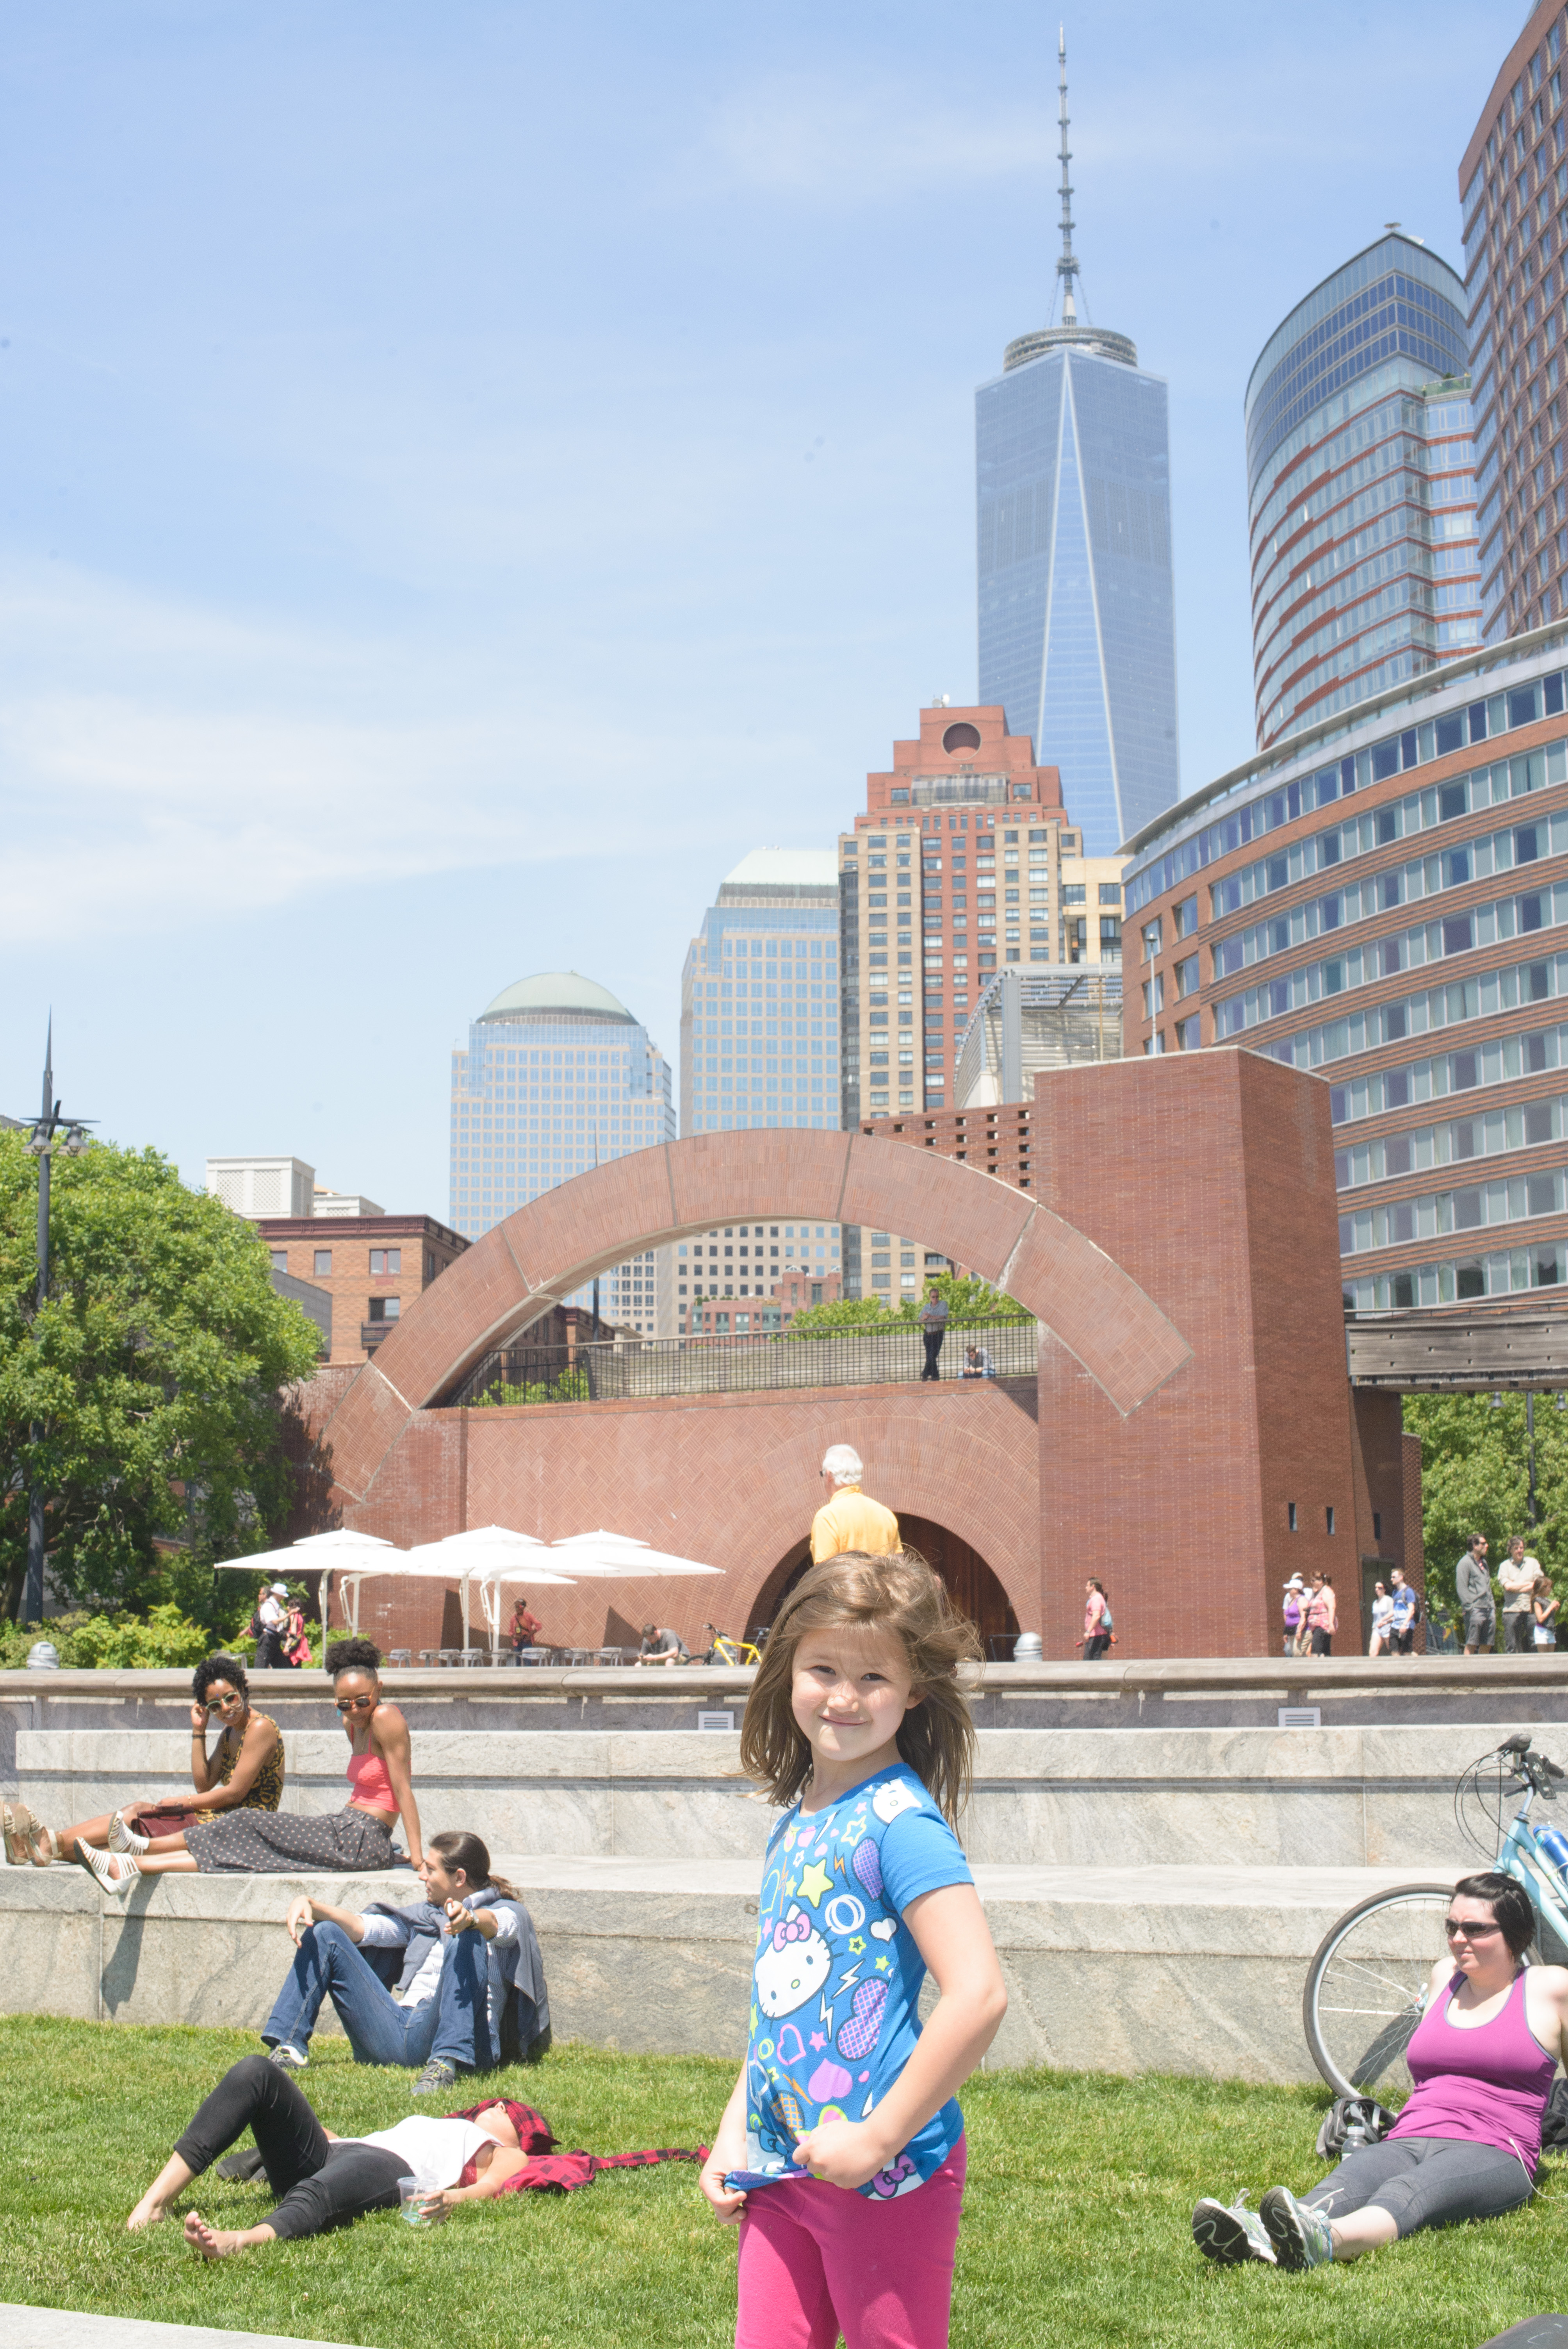 Josie in front of the freedom tower